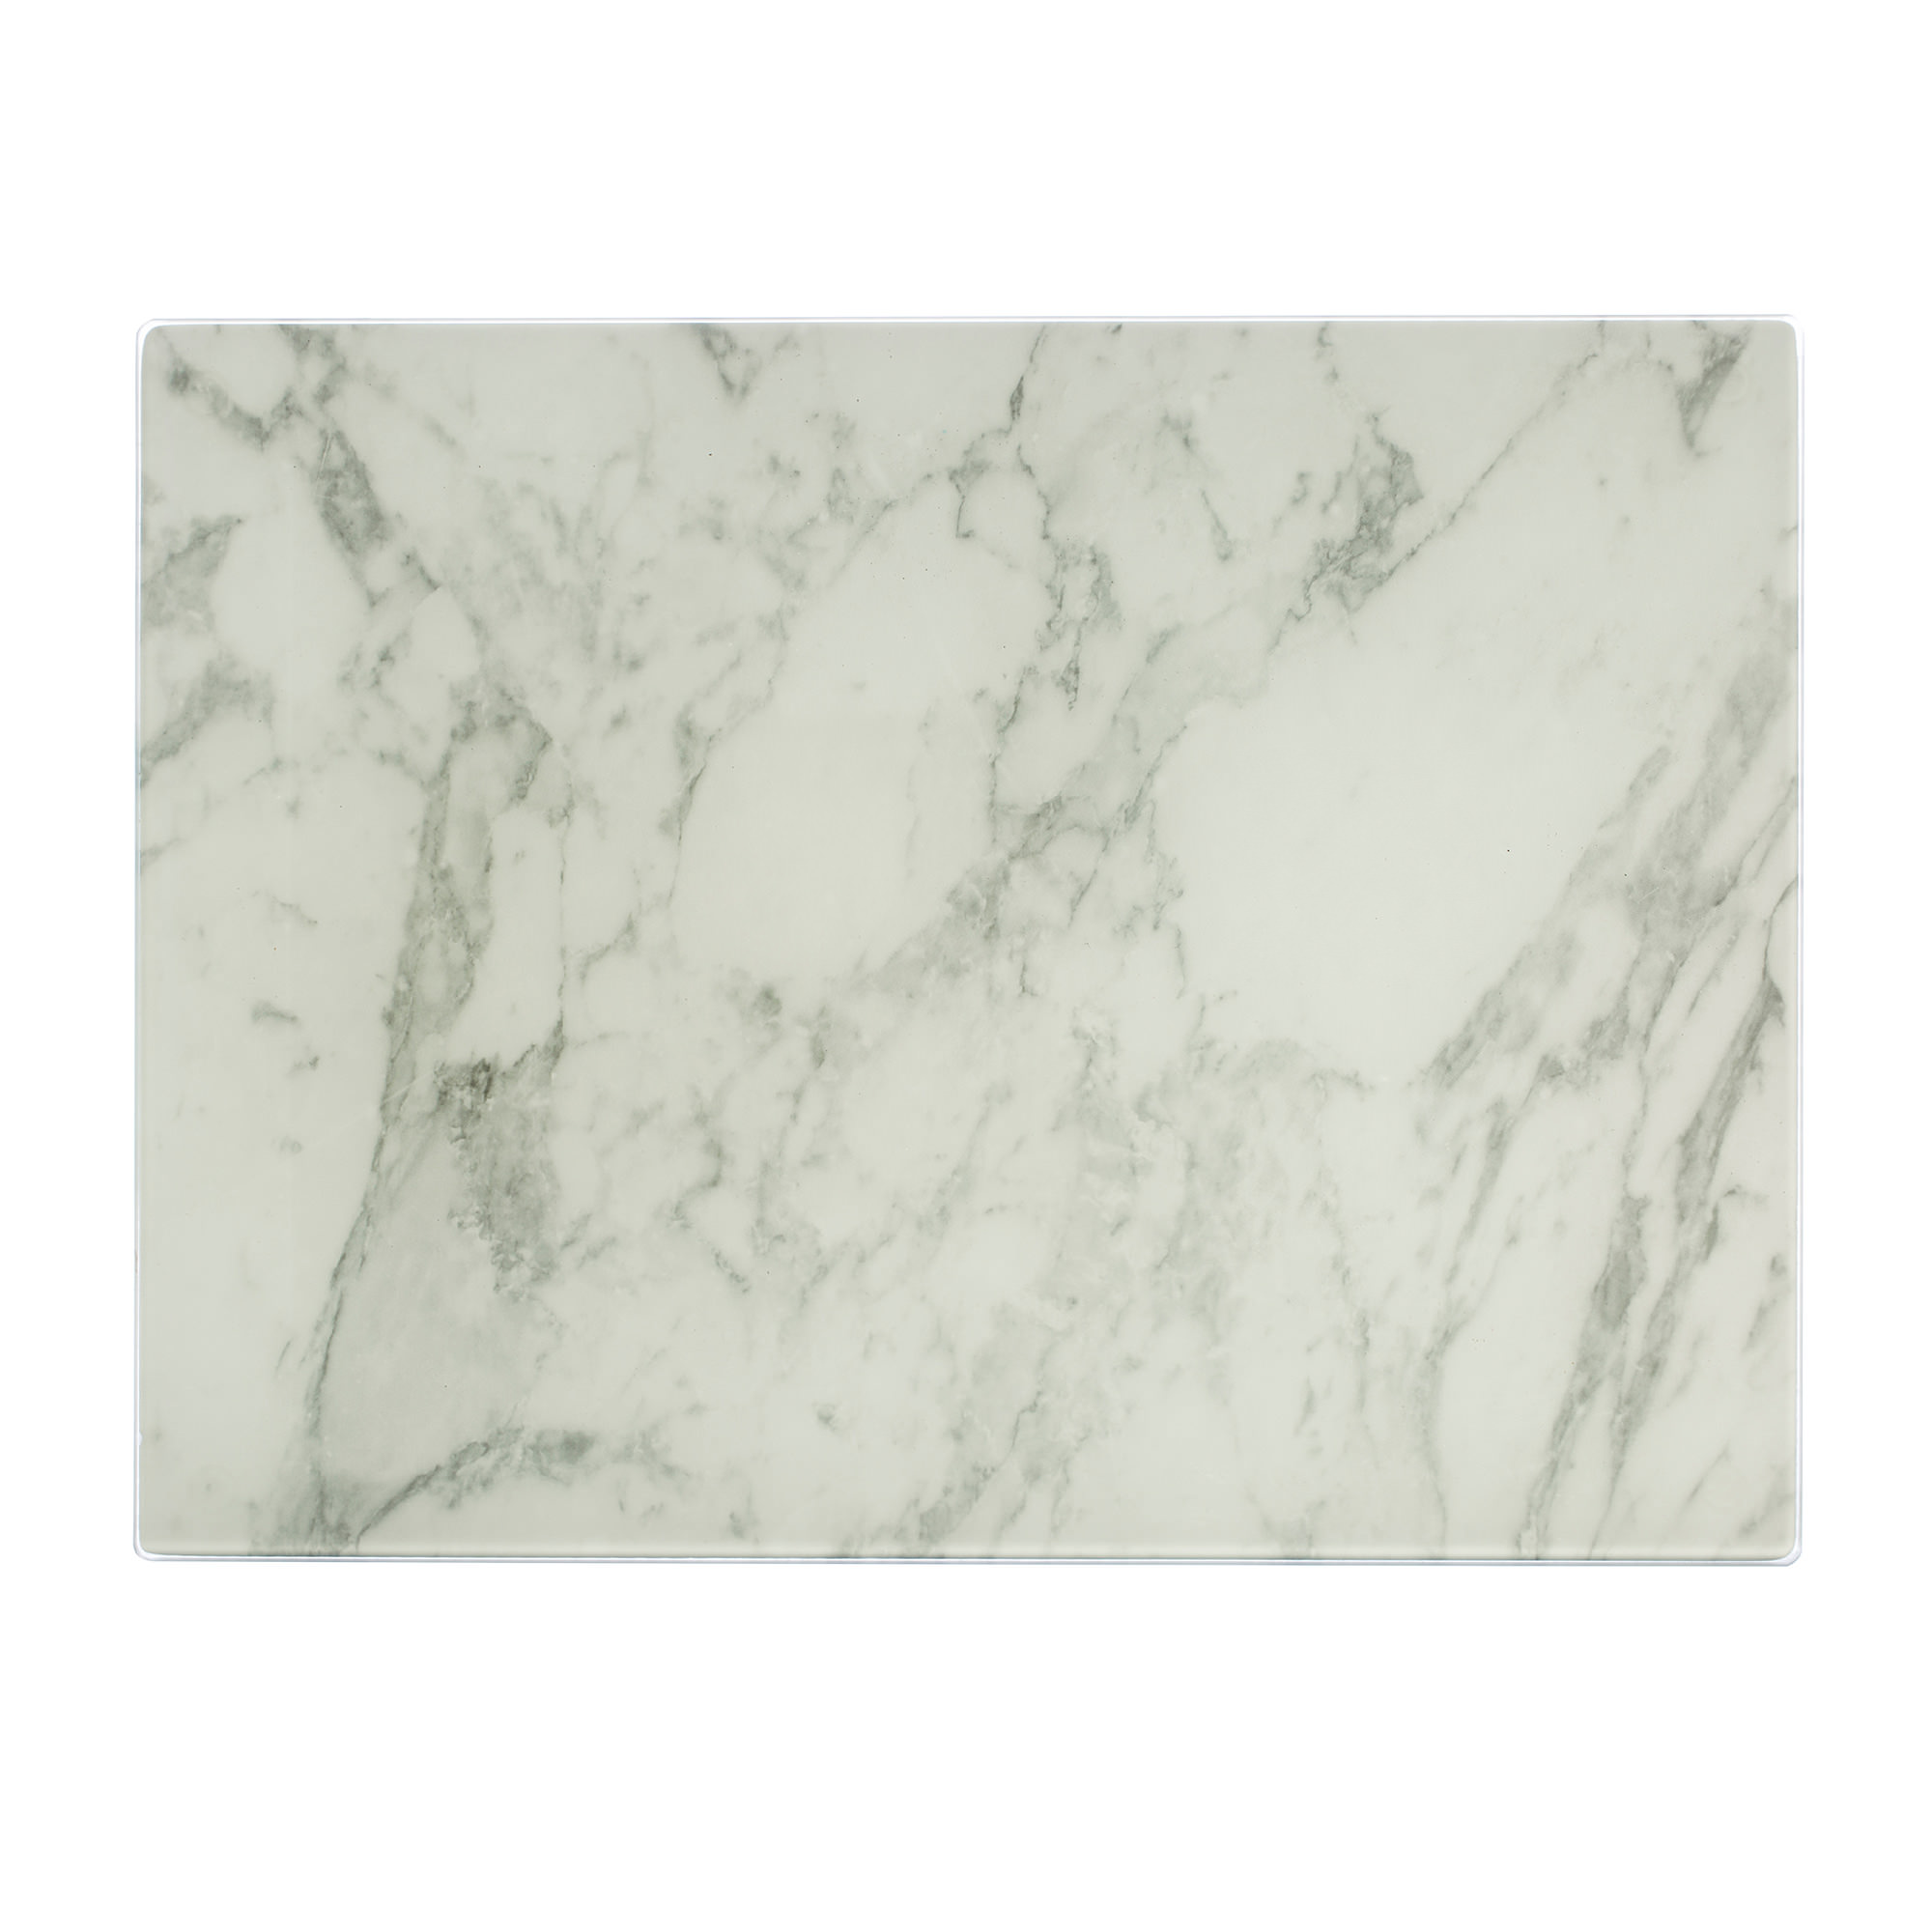 Typhoon Work Surface Protector 40x30cm Marble